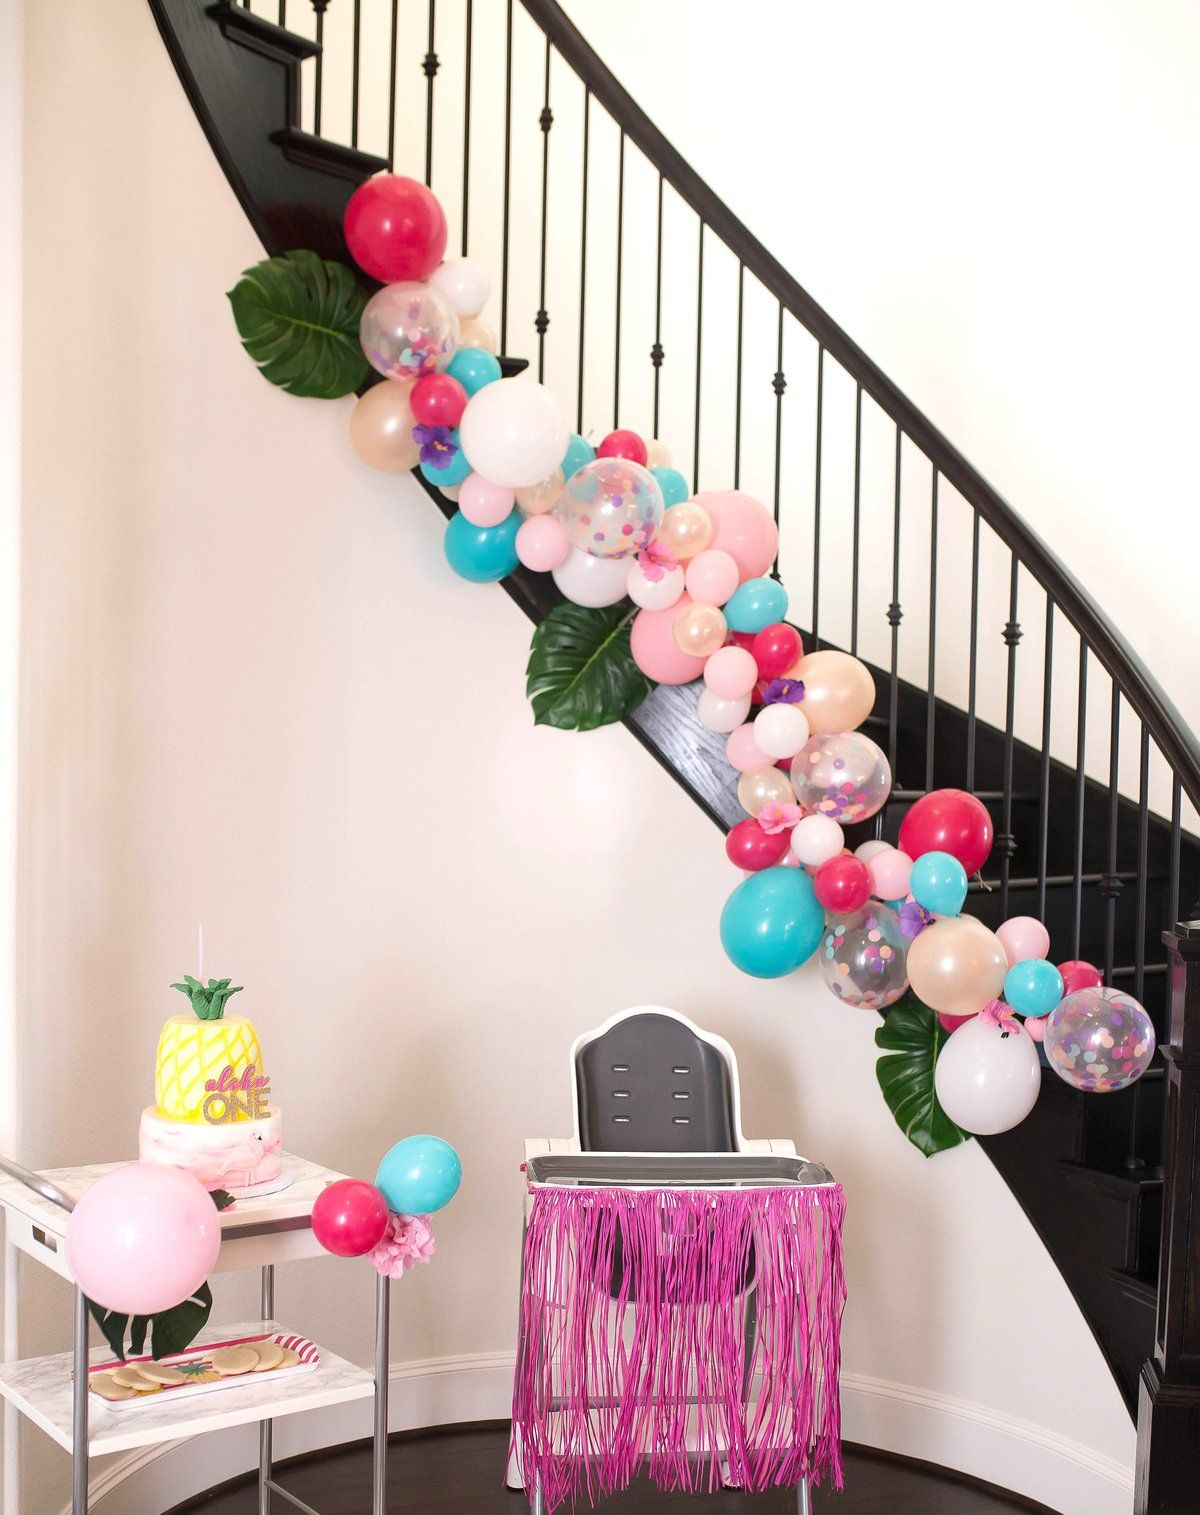 DIY Balloon Garland Kit Choose Your Own Colors in 2020